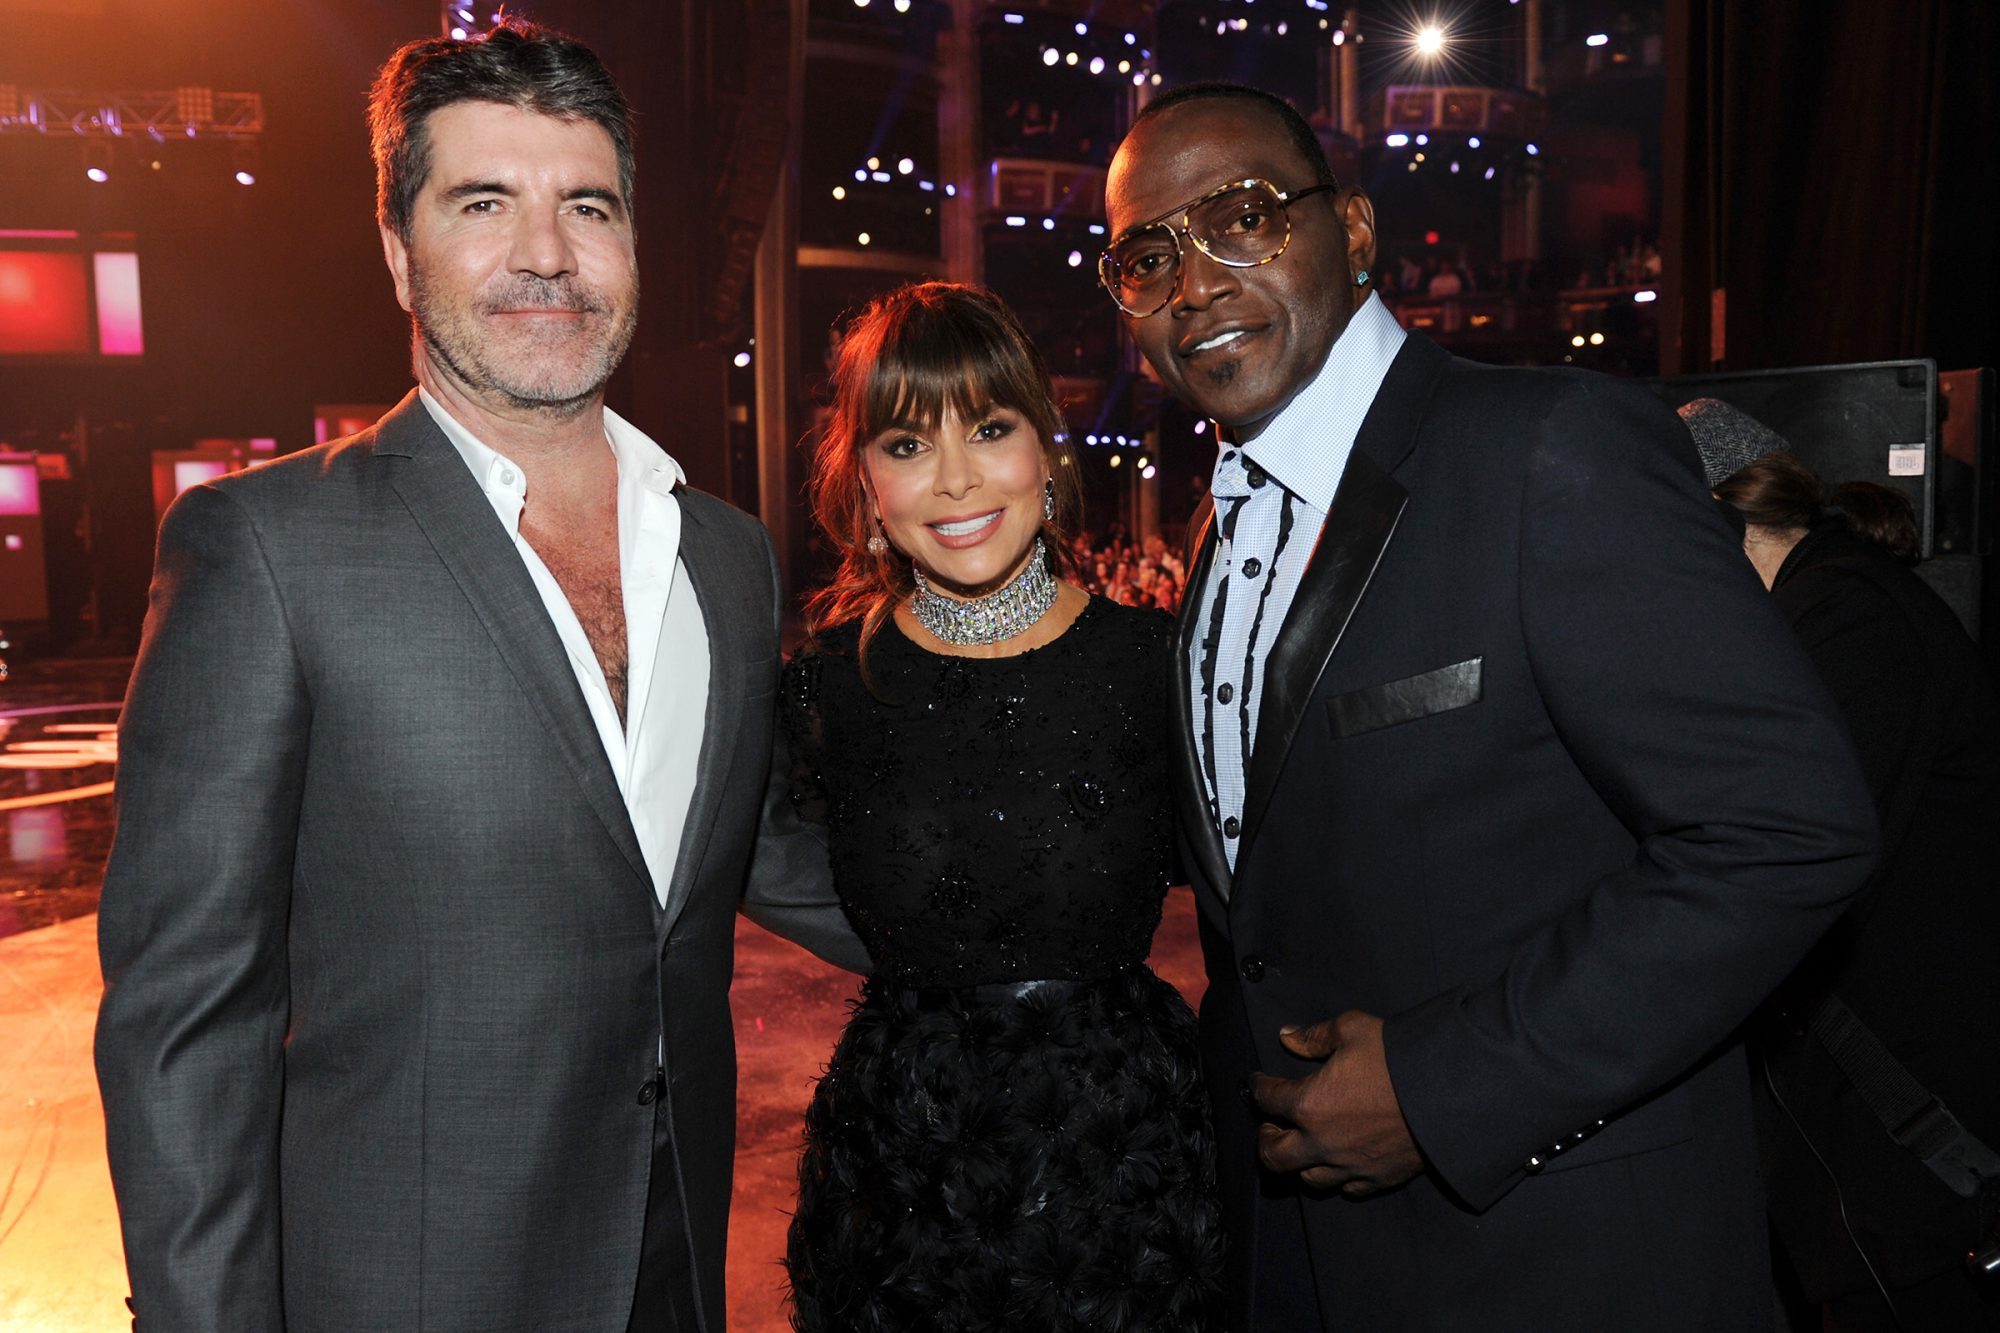 Simon Cowell, Paula Abdul and Randy Jackson